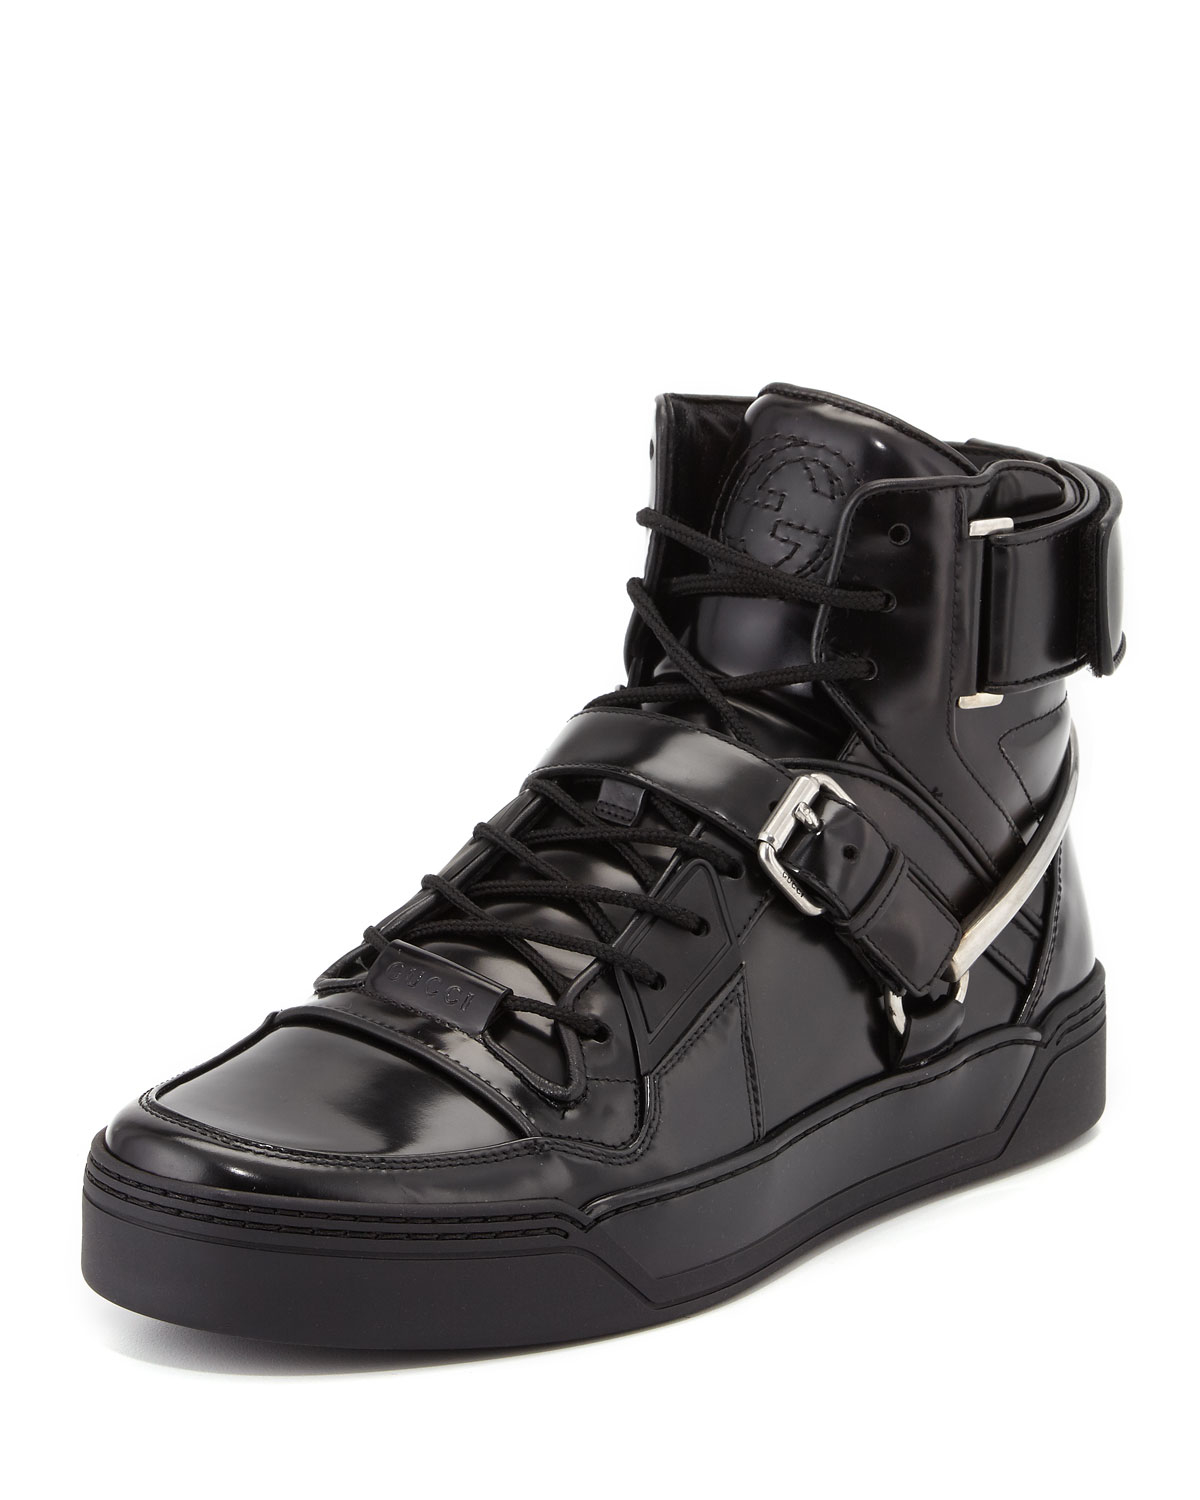 All Black Leather Tennis Shoes High Top